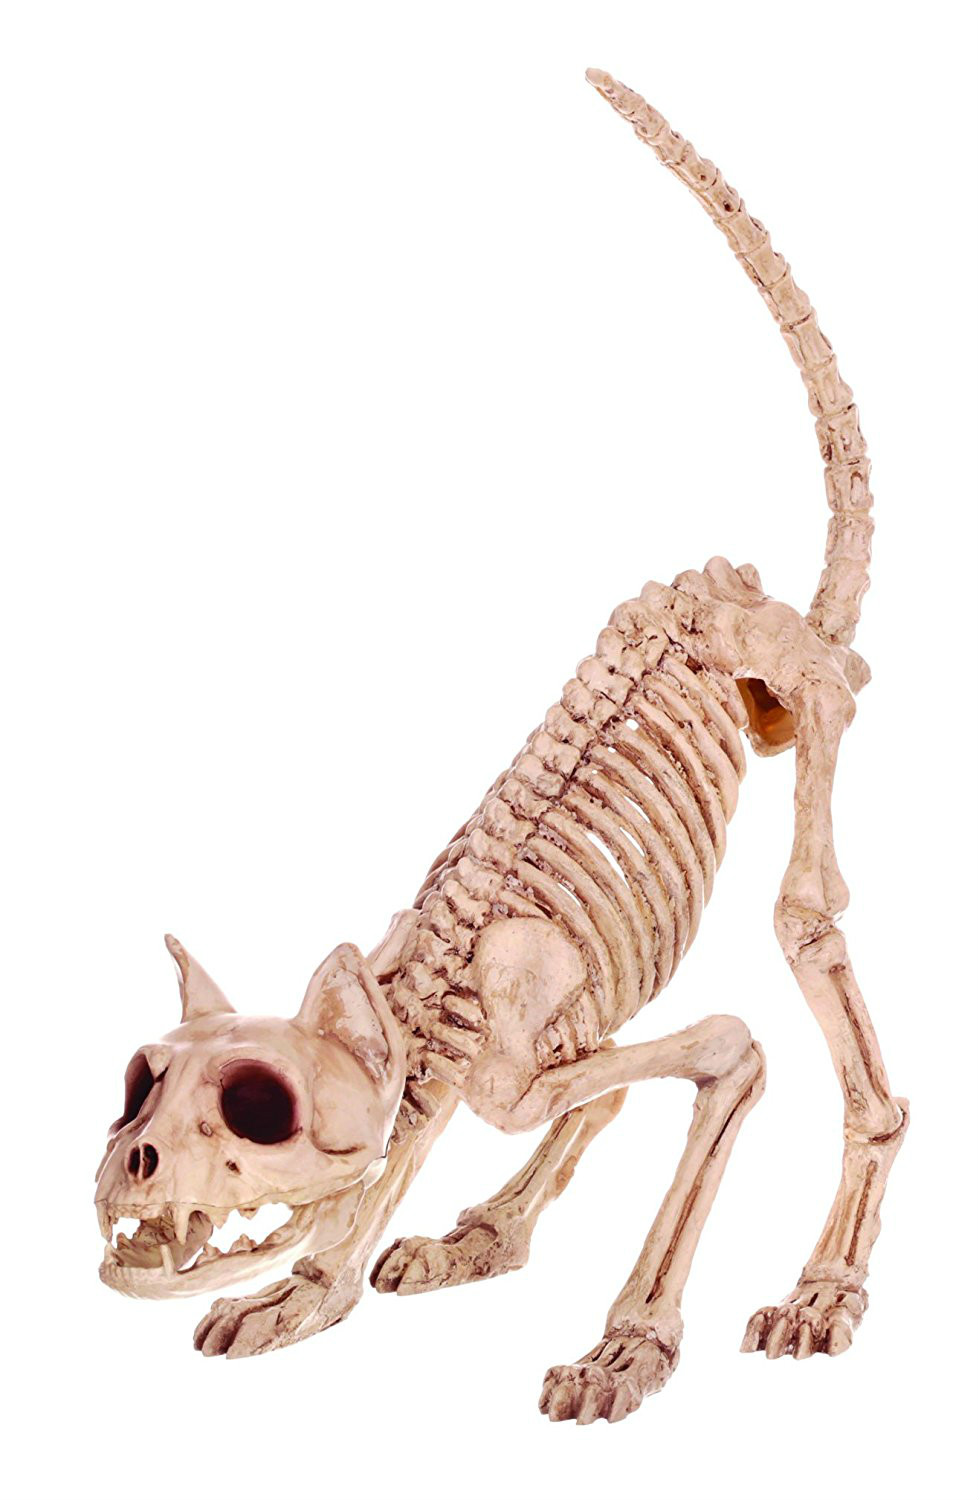 Fantasy Bone Skeleton Cat Animal Lil' Kitty Bonez Skeleton Bones for Horror Halloween Decoration